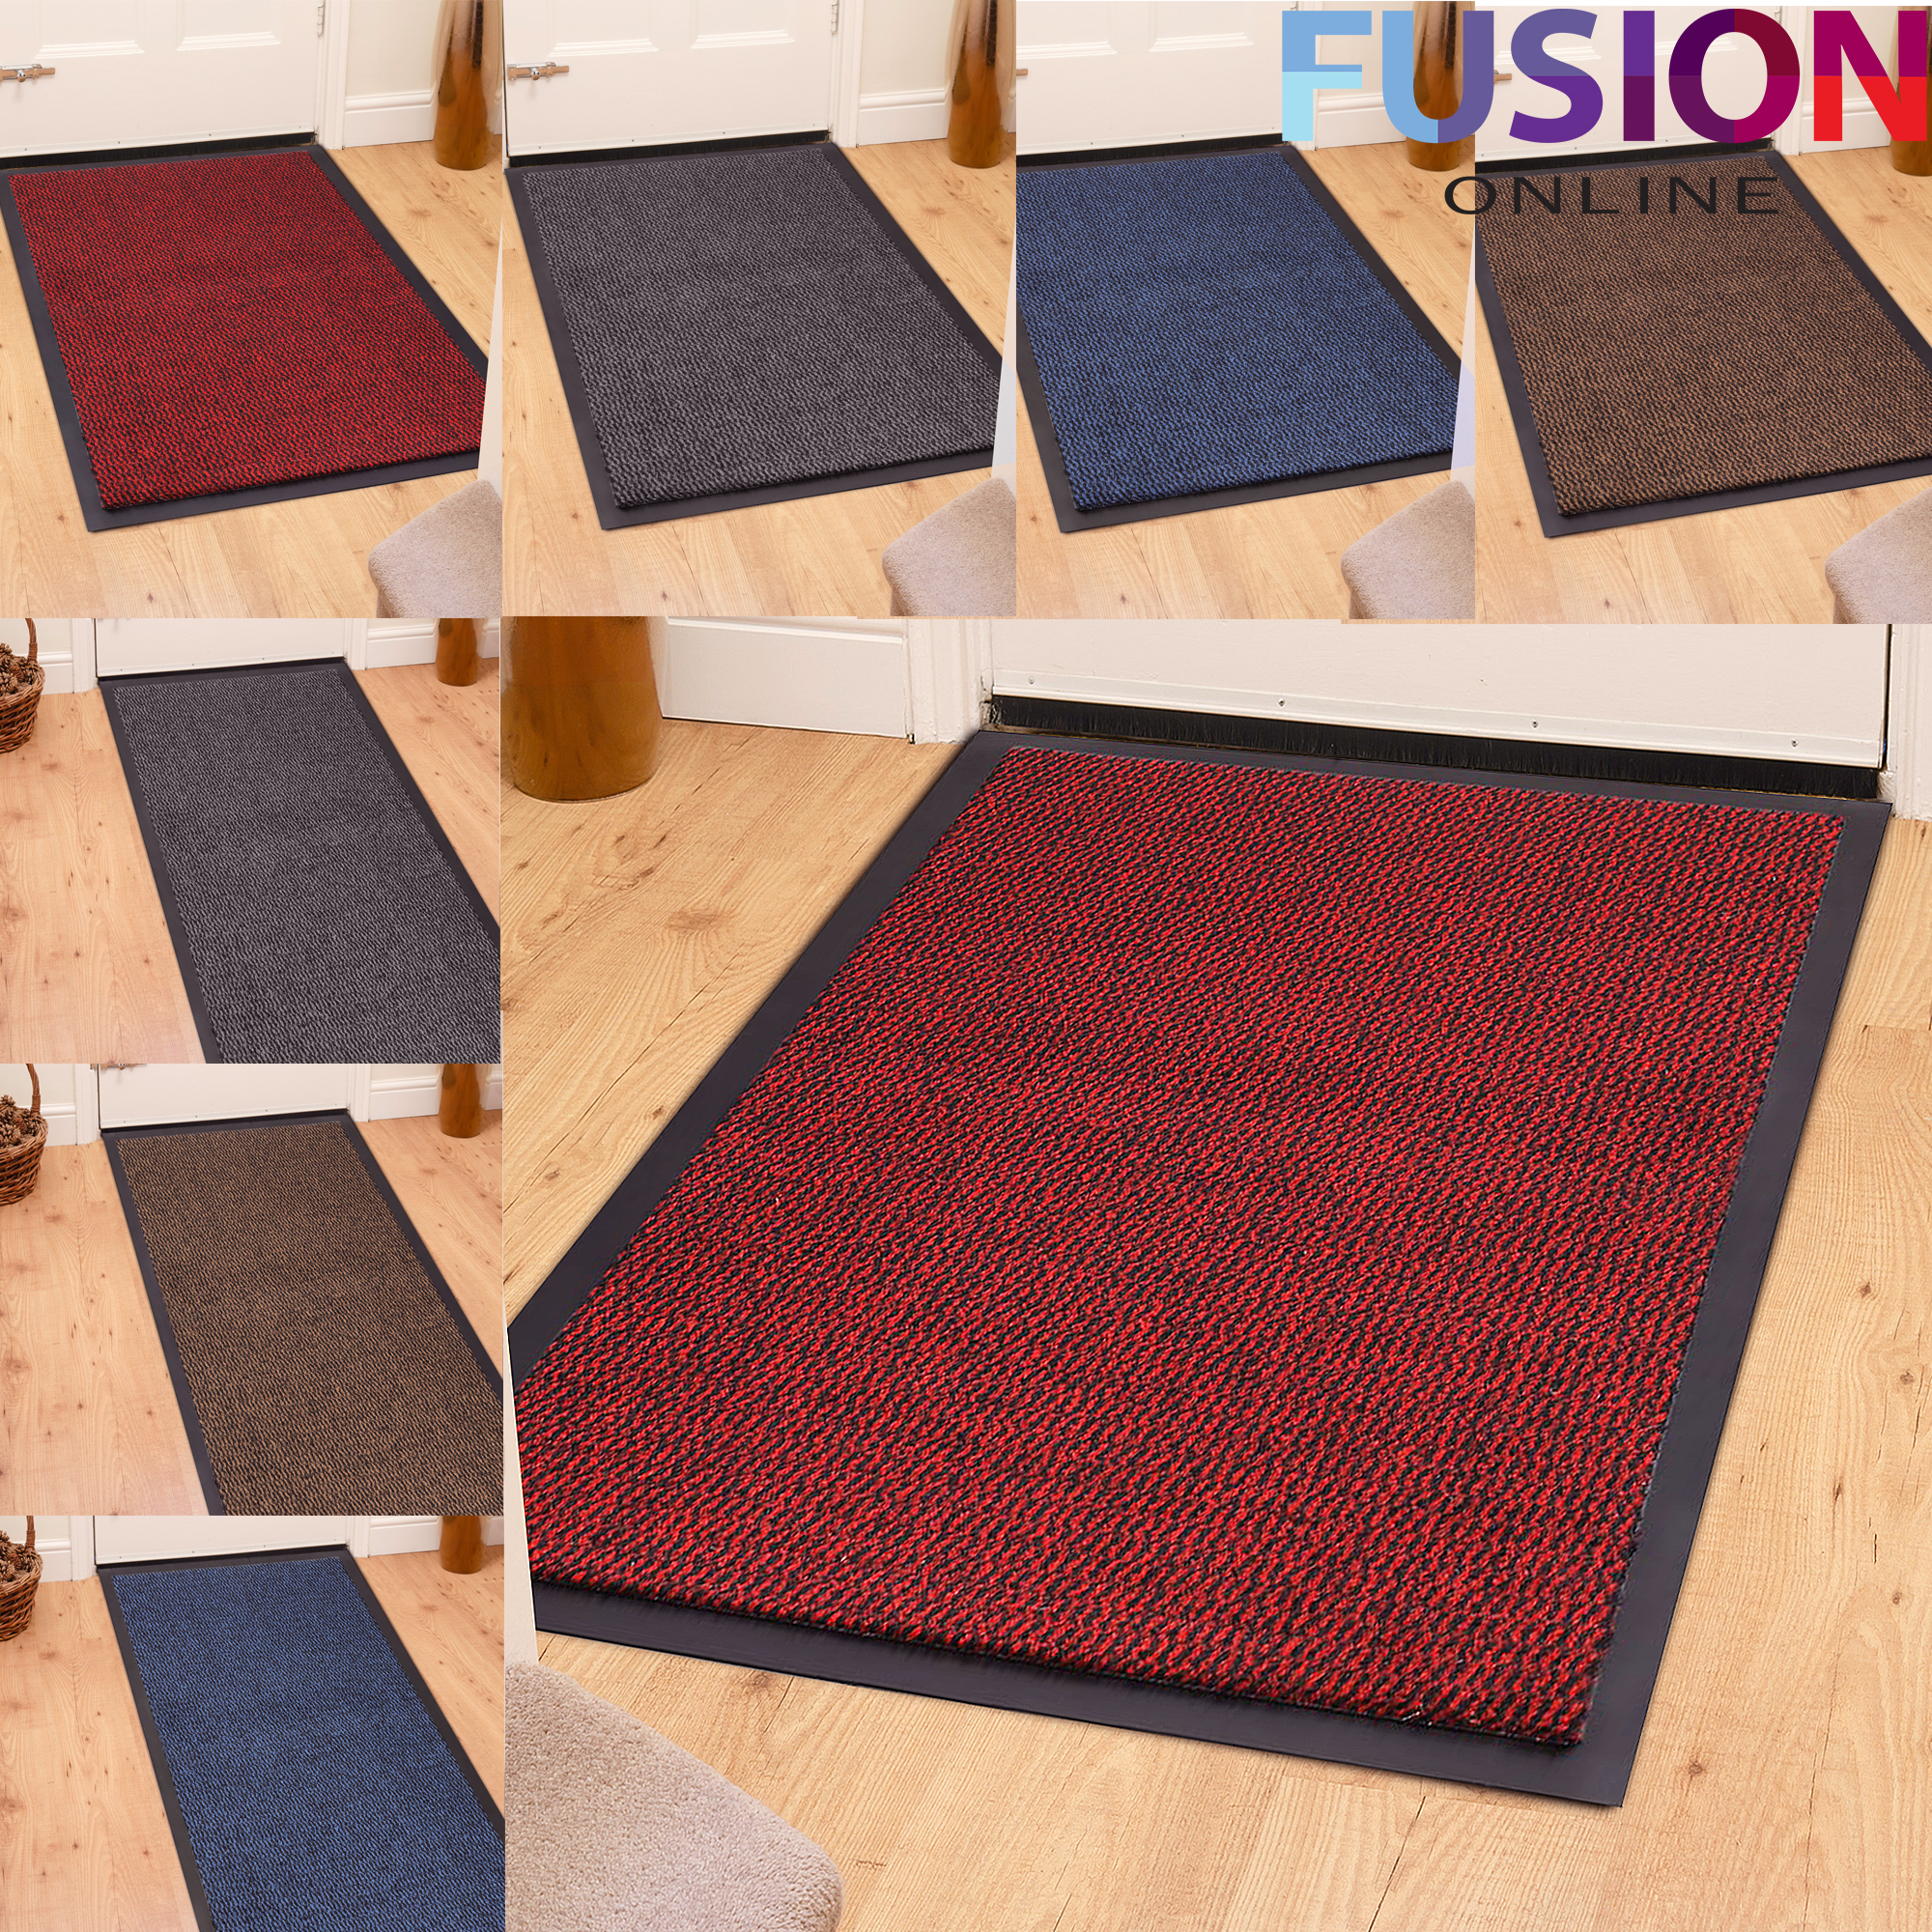 HEAVY DUTY NON SLIP RUBBER BARRIER MAT LARGE & SMALL RUGS